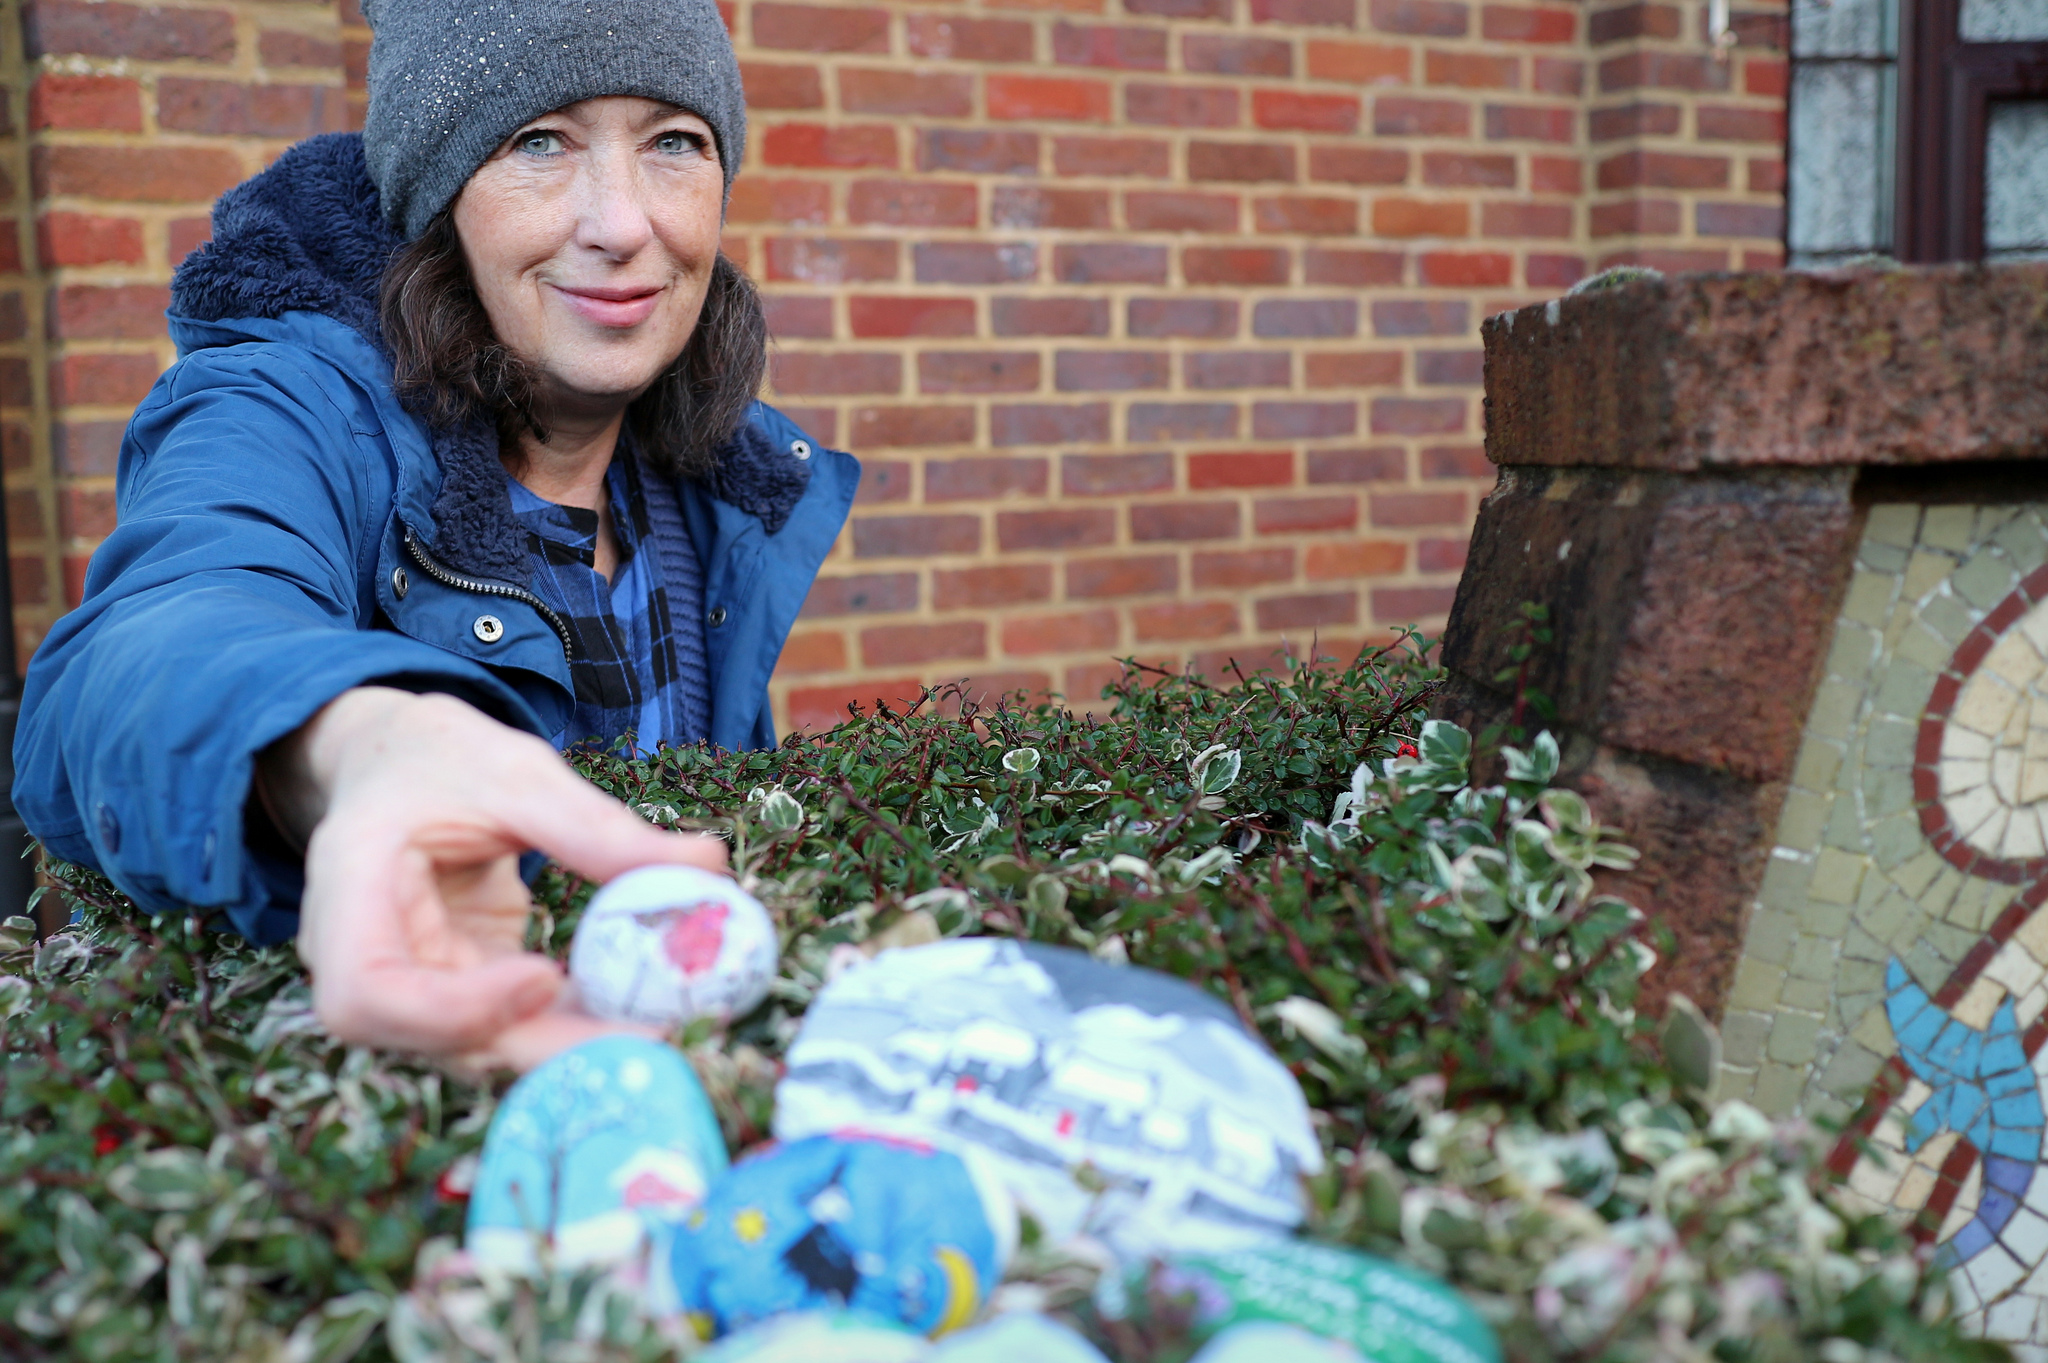 Cranleigh world record attempt with painted pebbles